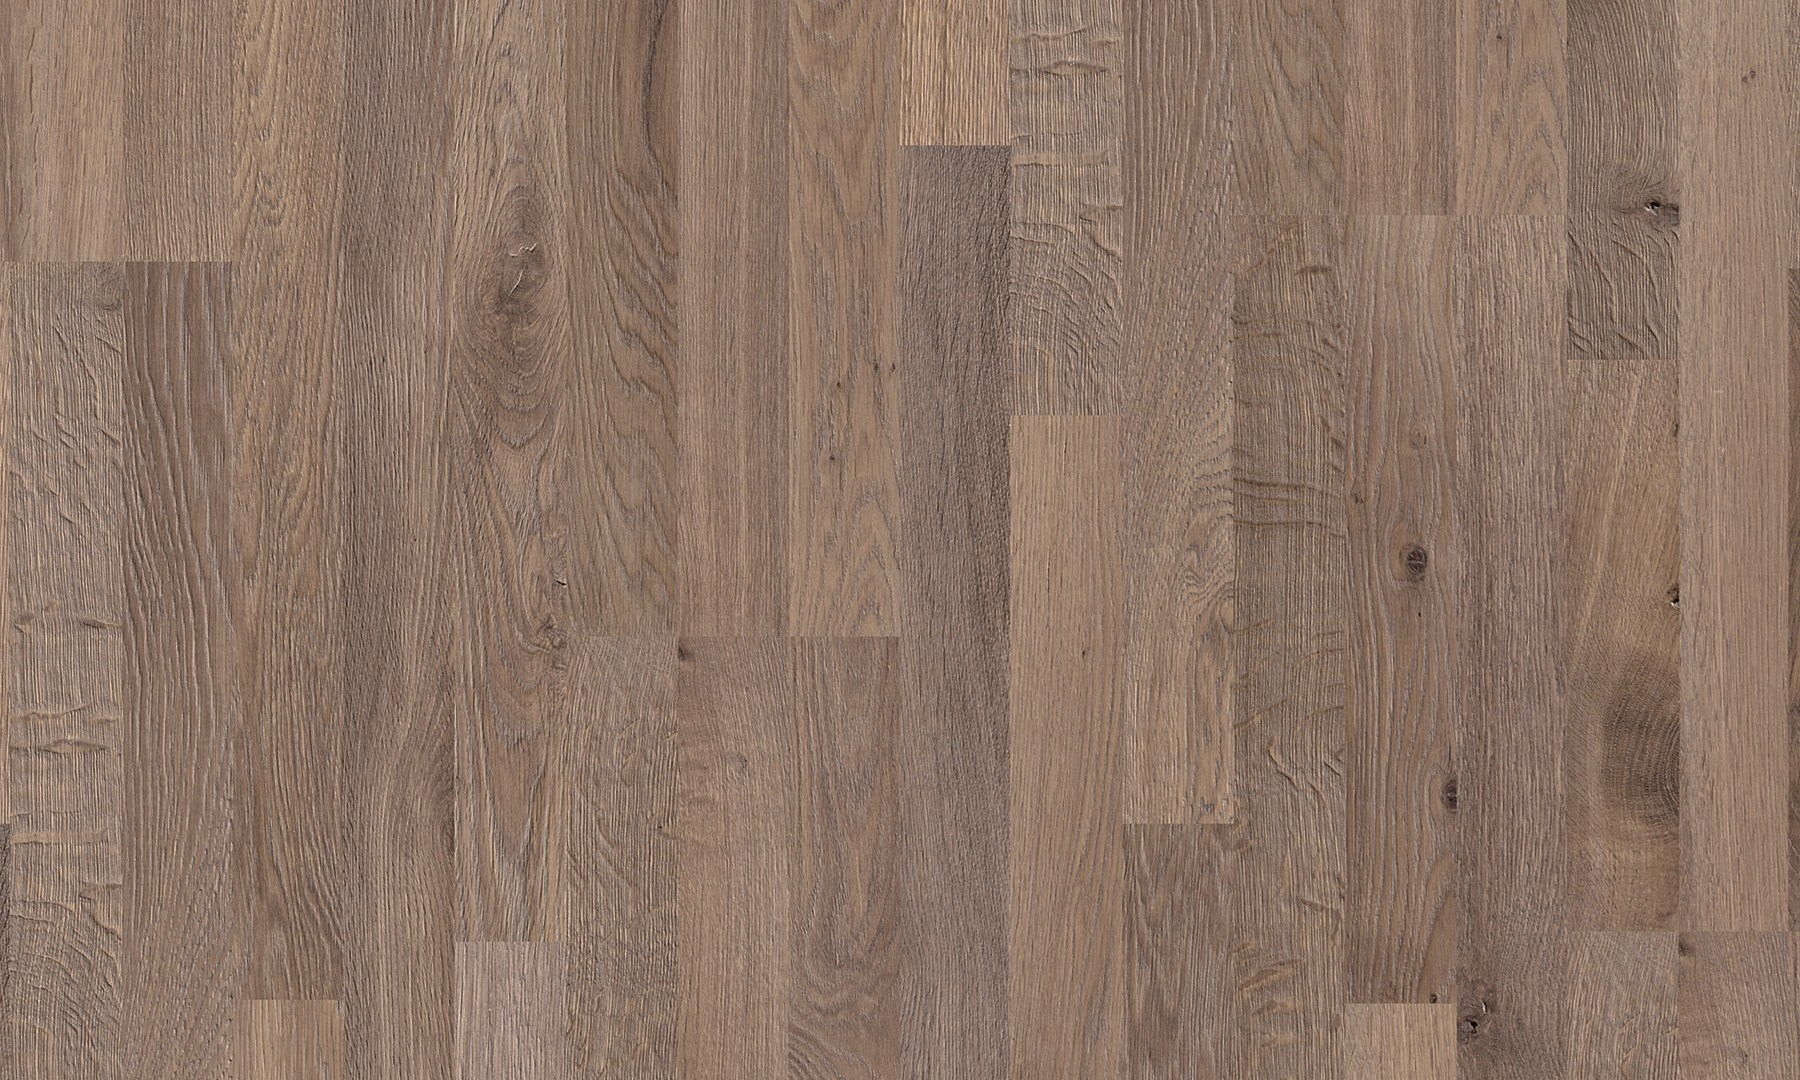 Pergo Parquet Laminate Flooring Dark Wild Oak 3 Strip By Pergo